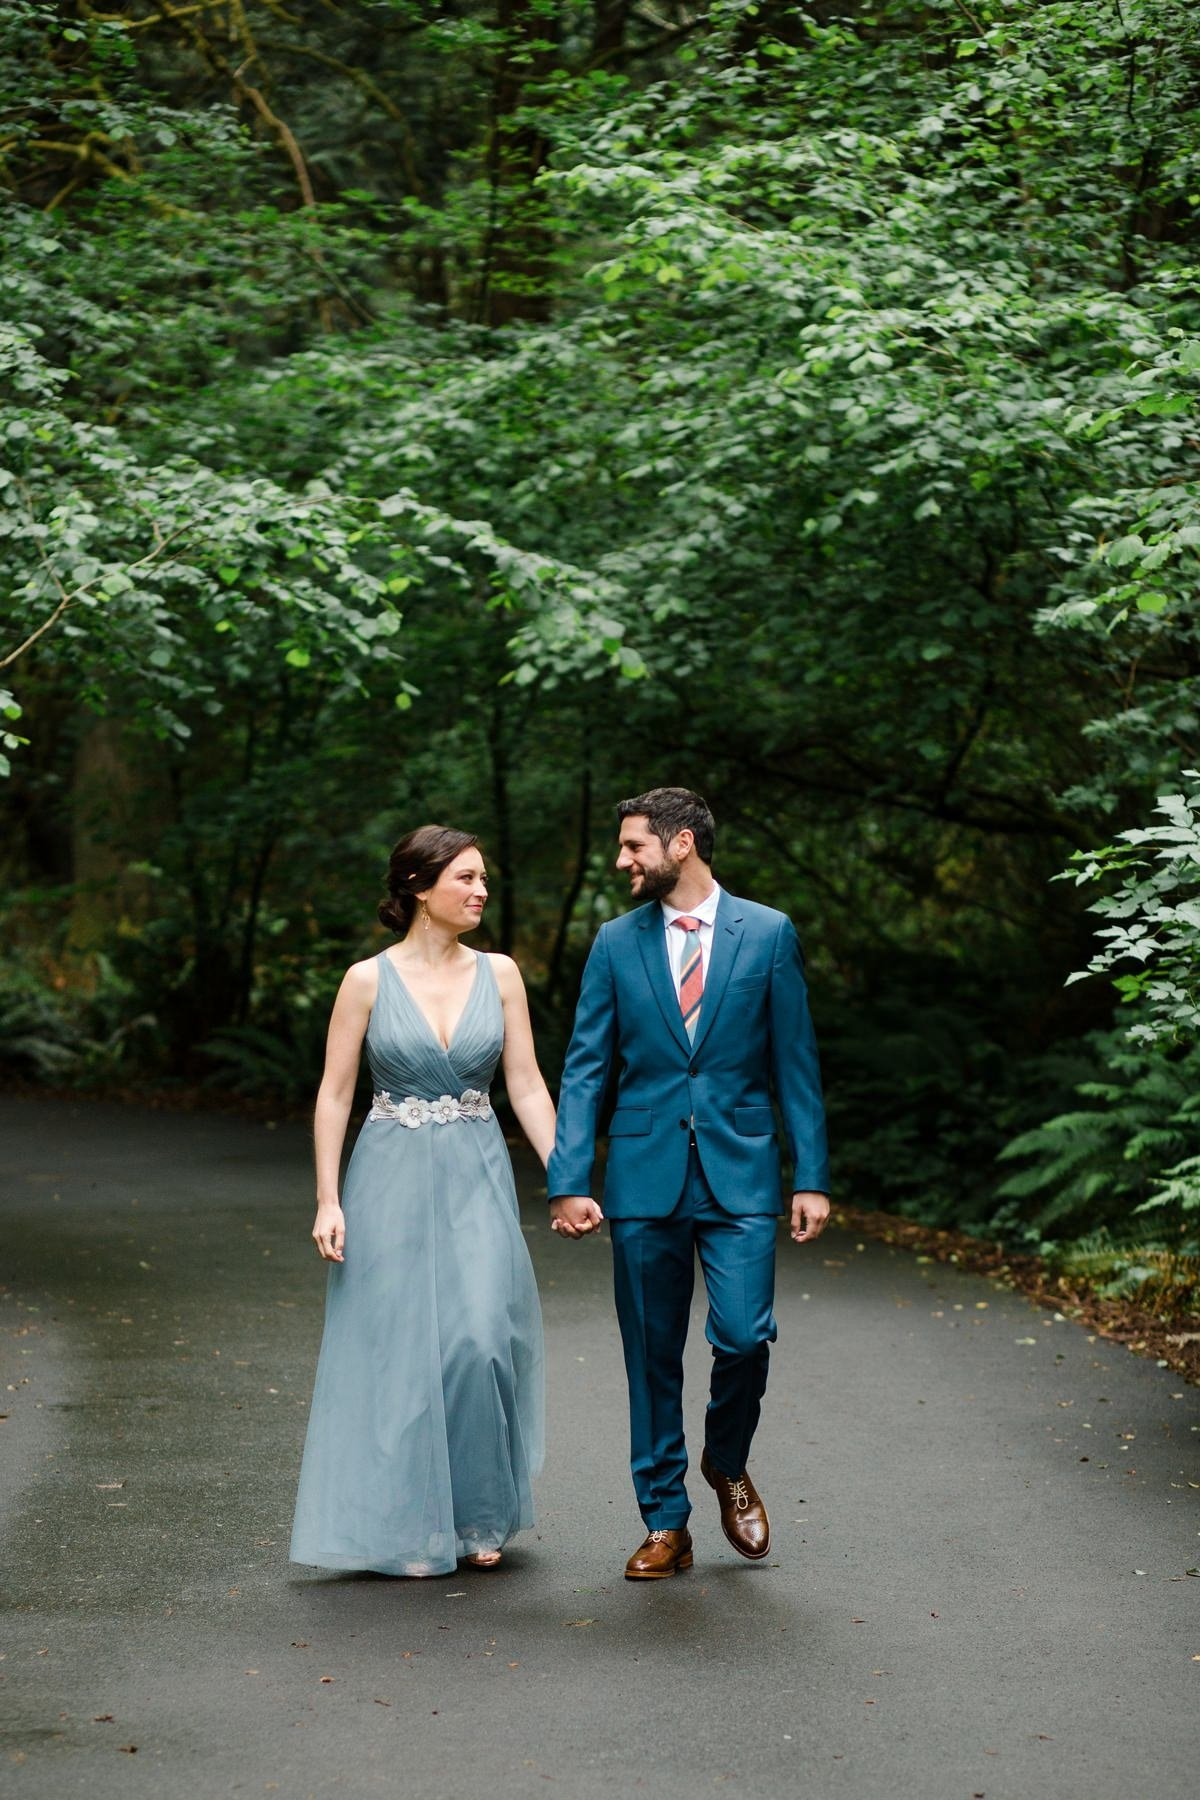 bainbridge-island-washington-wedding-photographer-cameron-zegers-11_1200